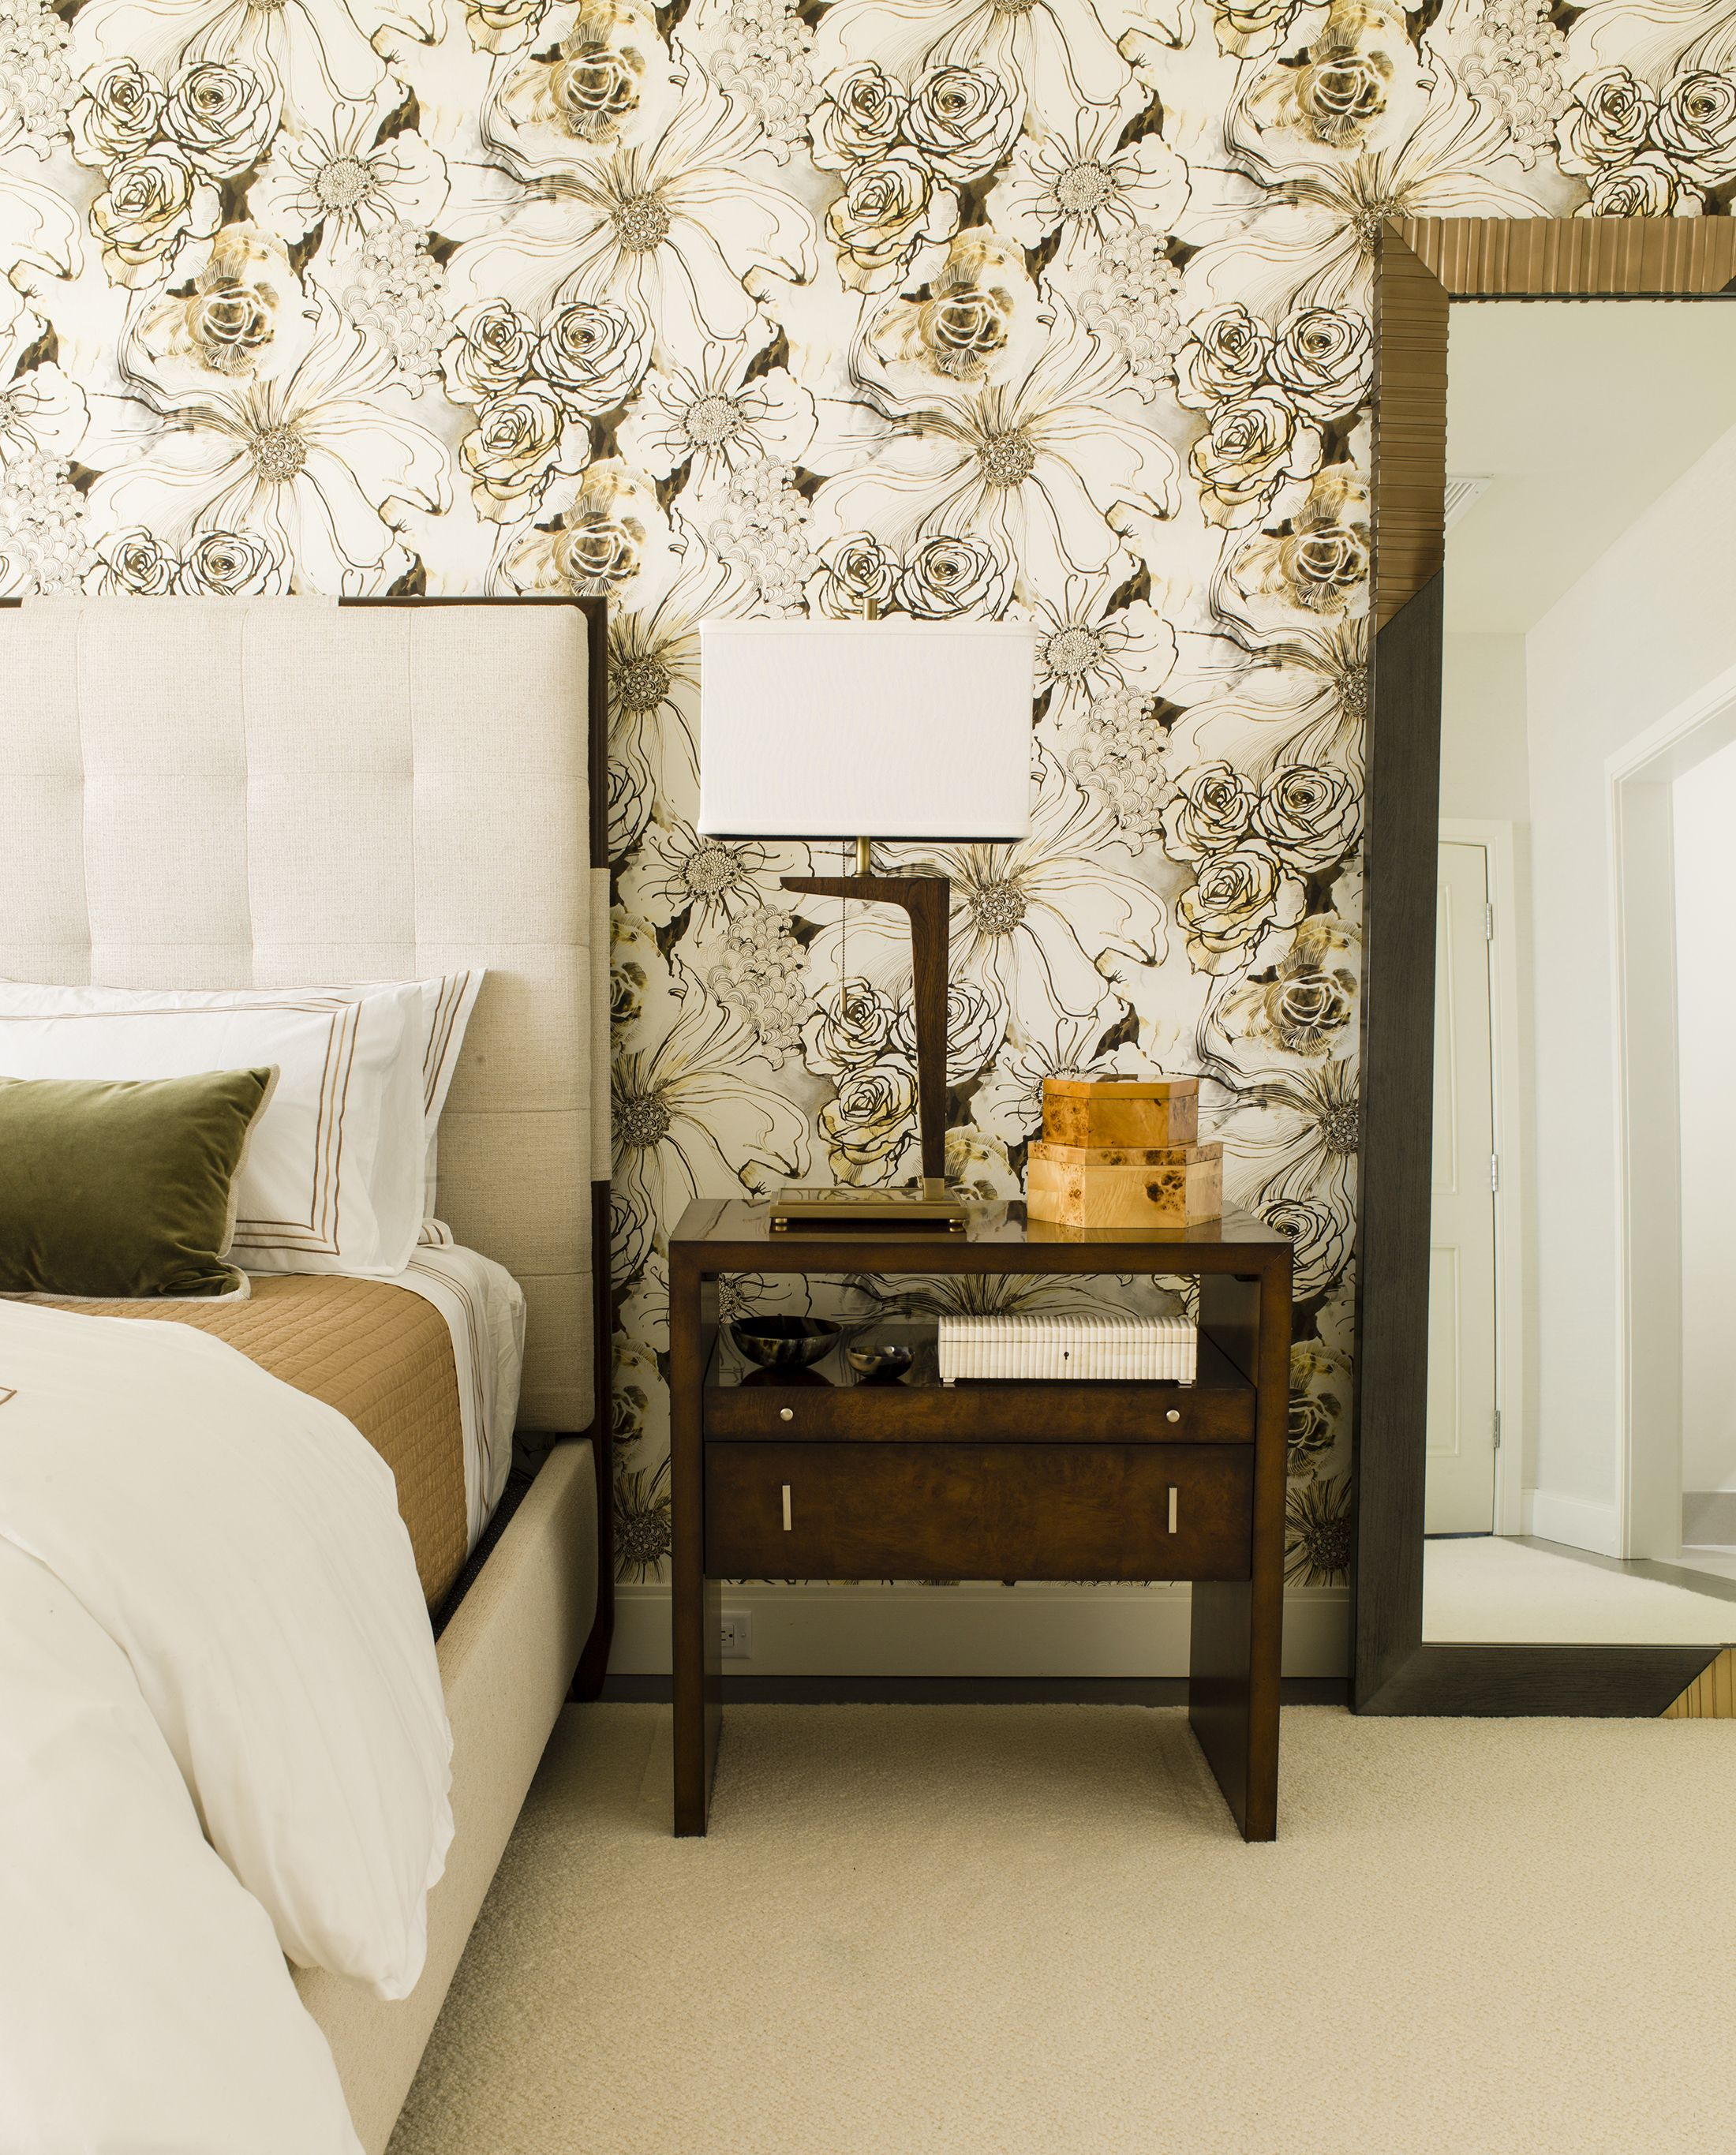 9 Bedroom Wallpaper Ideas - Statement Wallpapers We Love